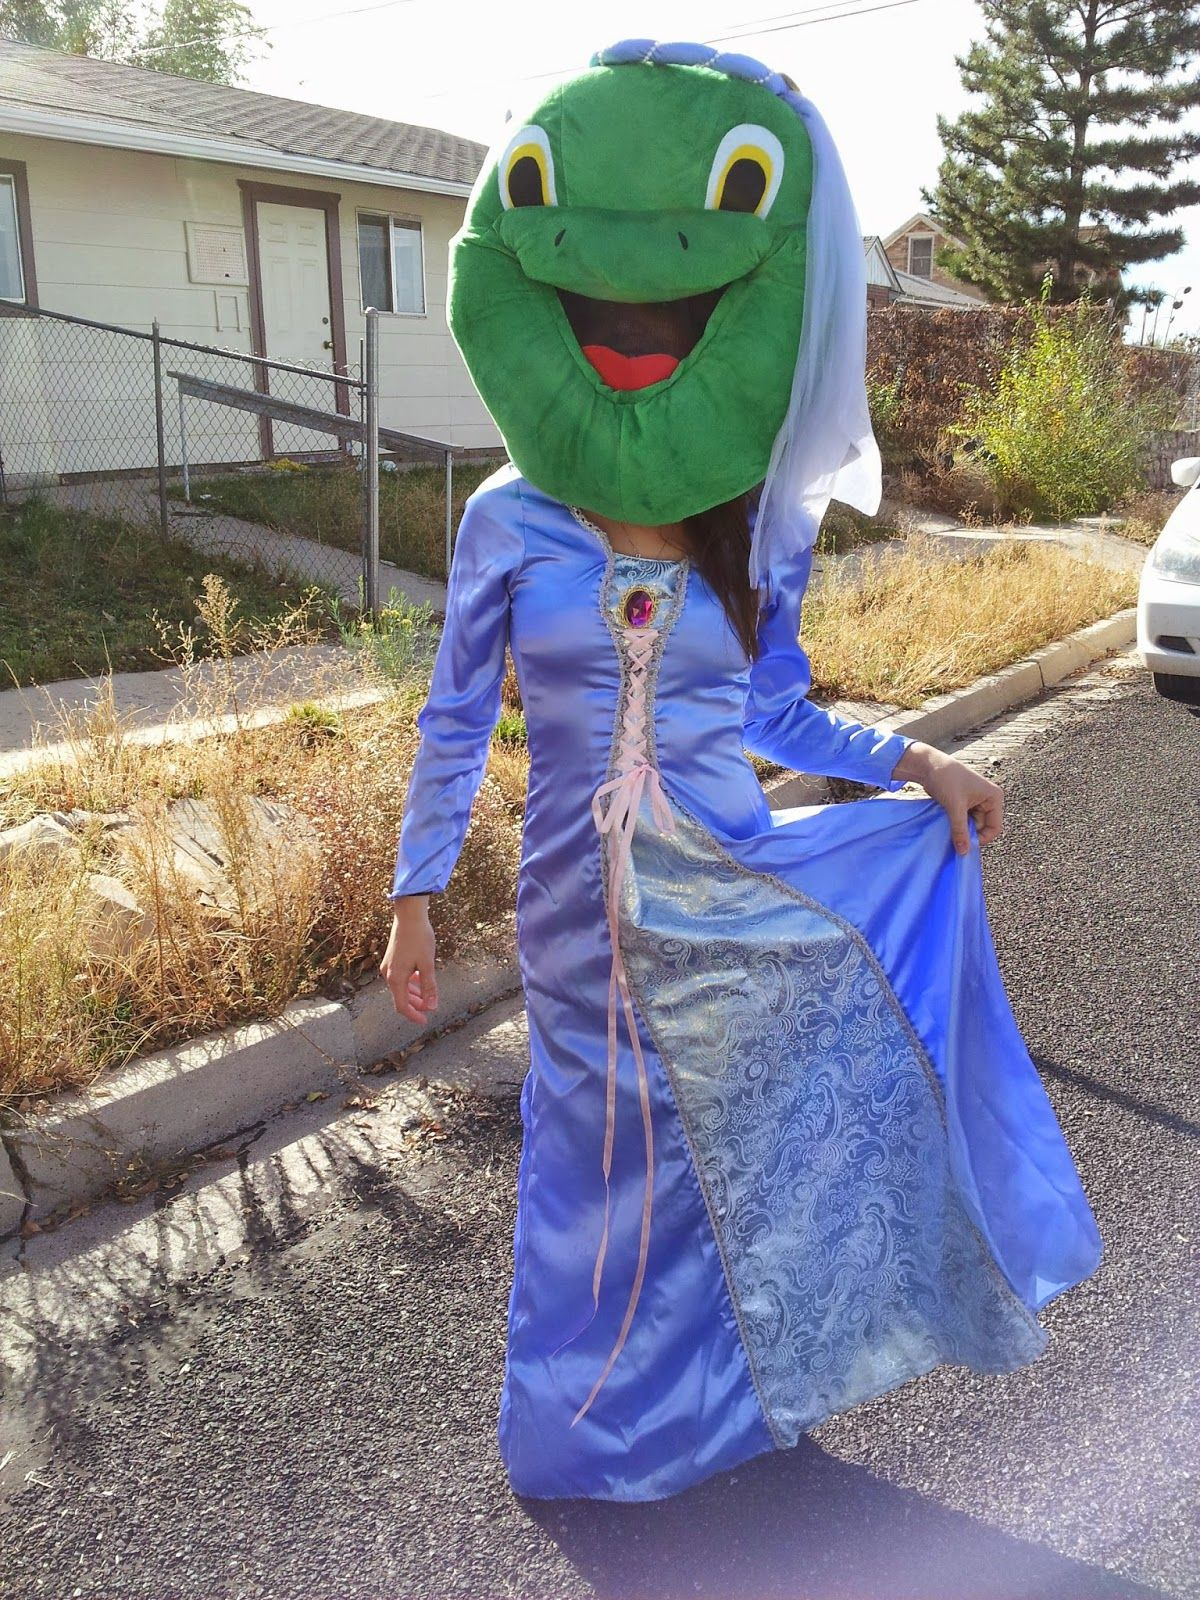 Quintessence: Story Book Parade What it's like to be inside a furry, hot costume!